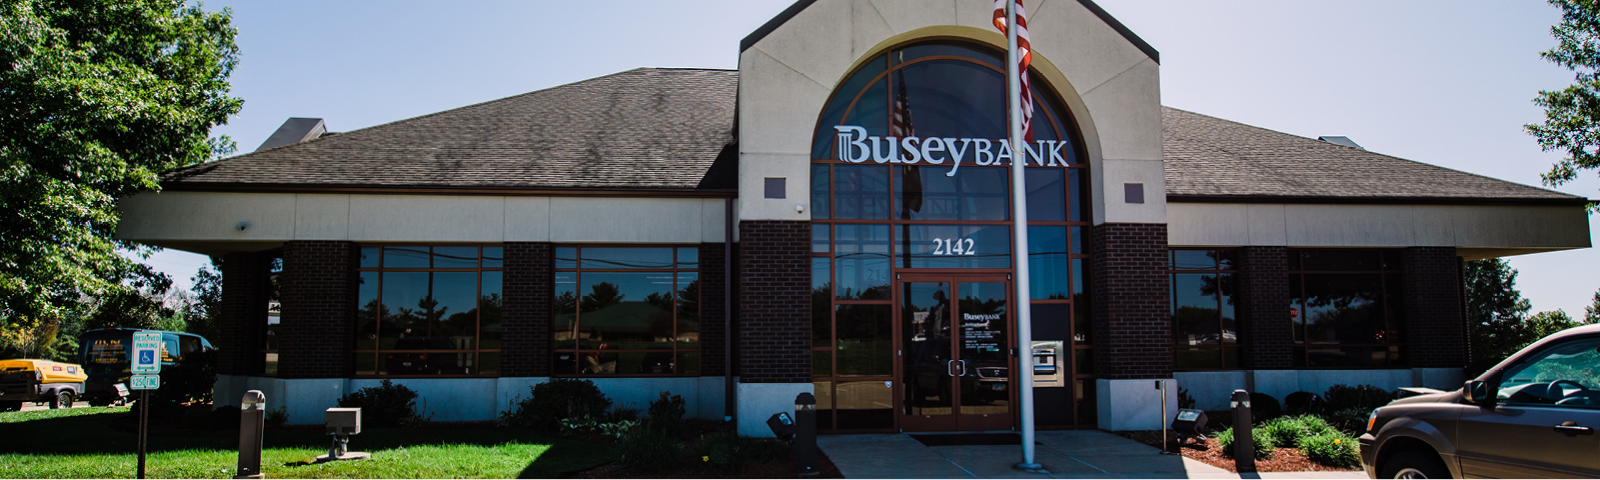 Busey Bank Glen Carbon location